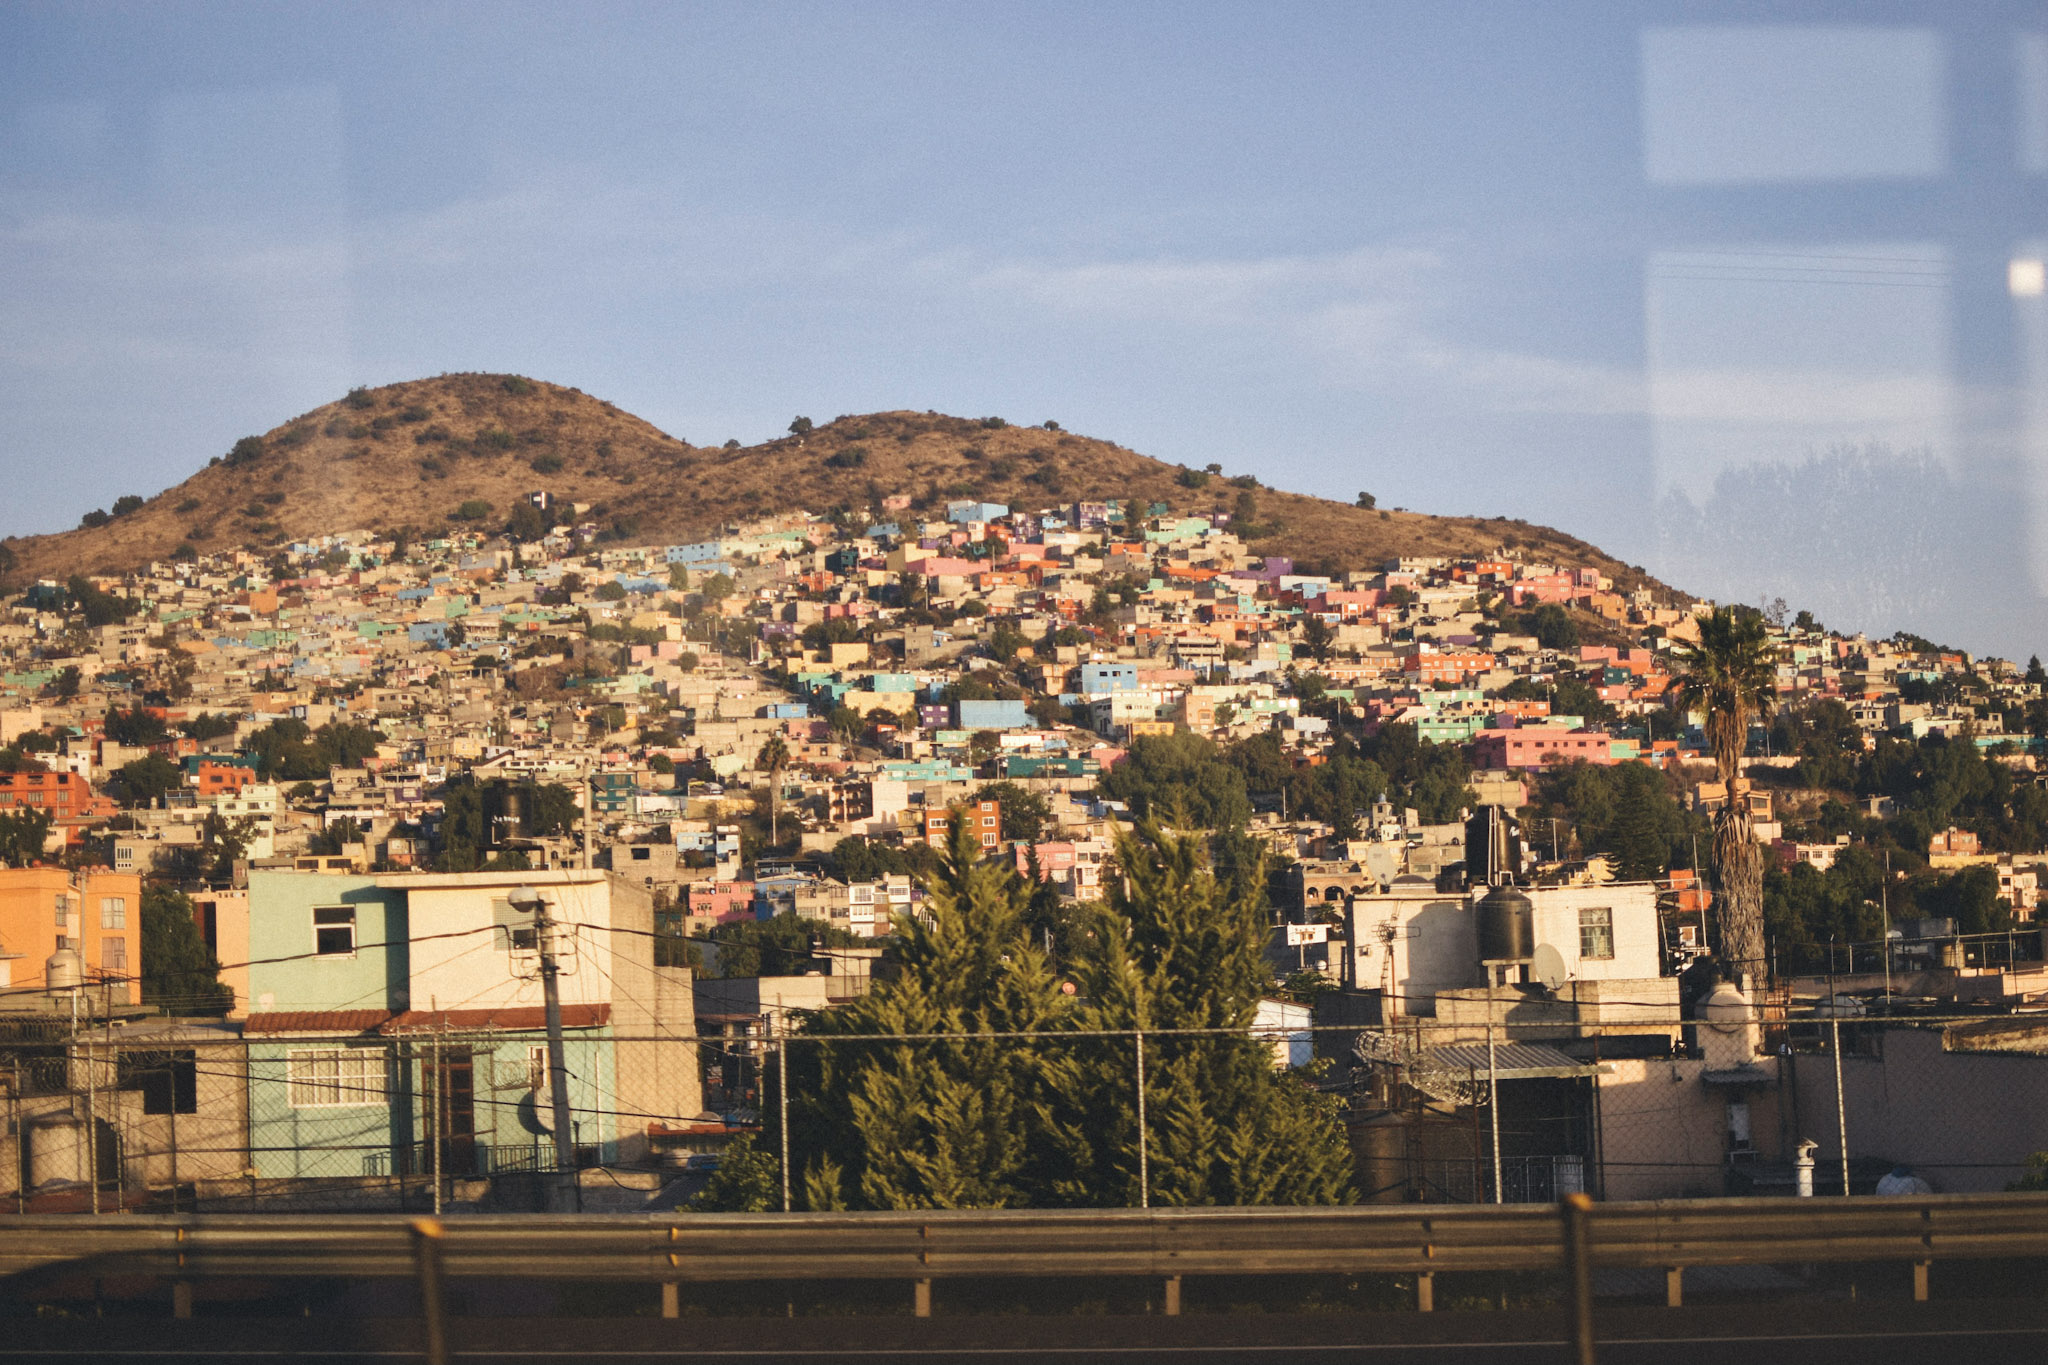 A working-class neighborhood just outside of Mexico City